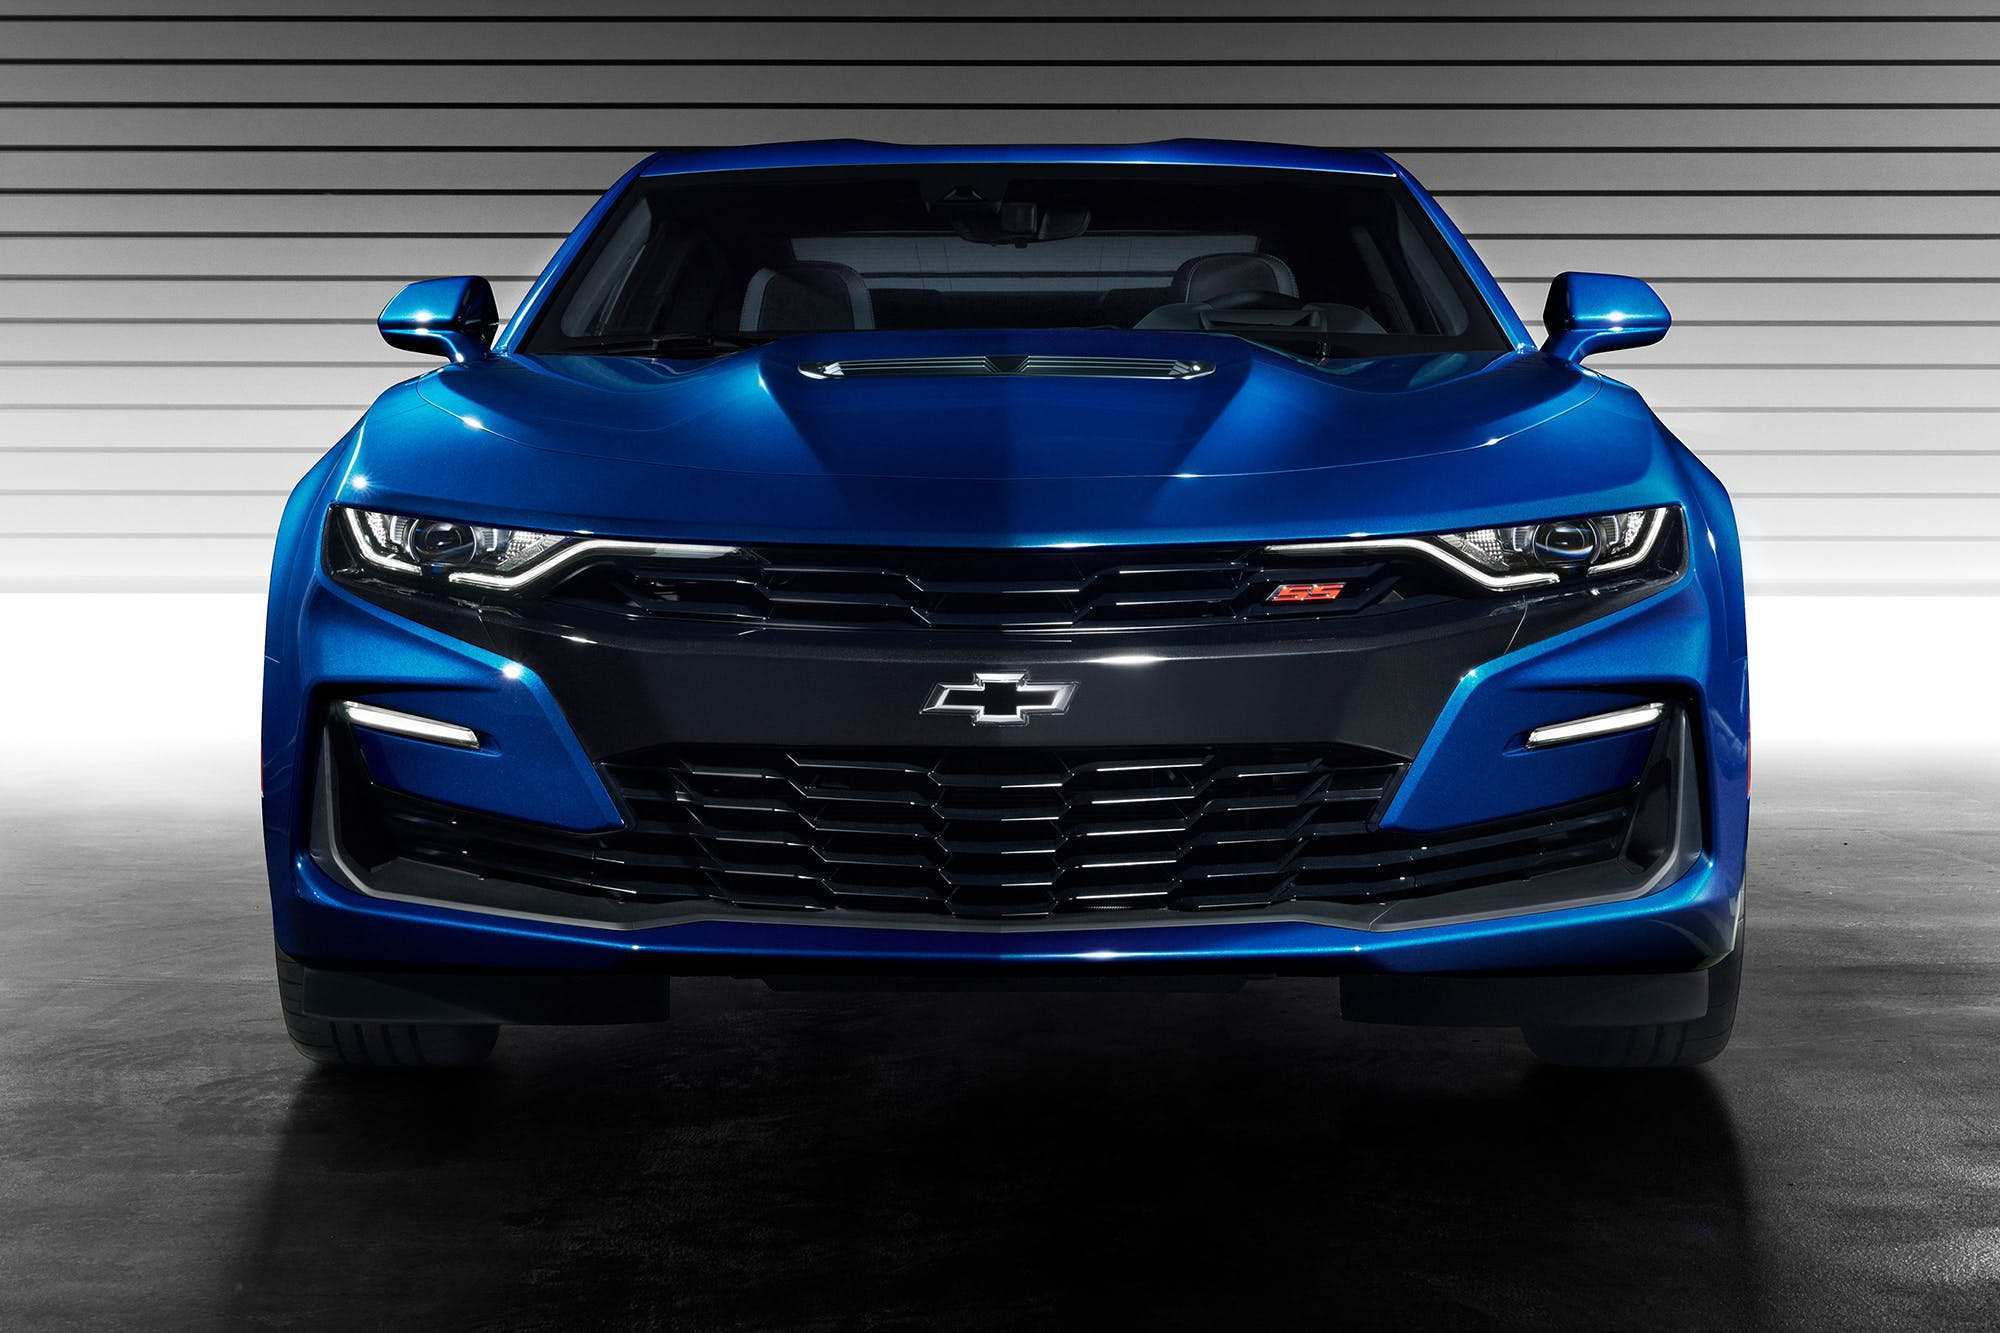 58 The 2020 Camaro Ss Exterior And Interior